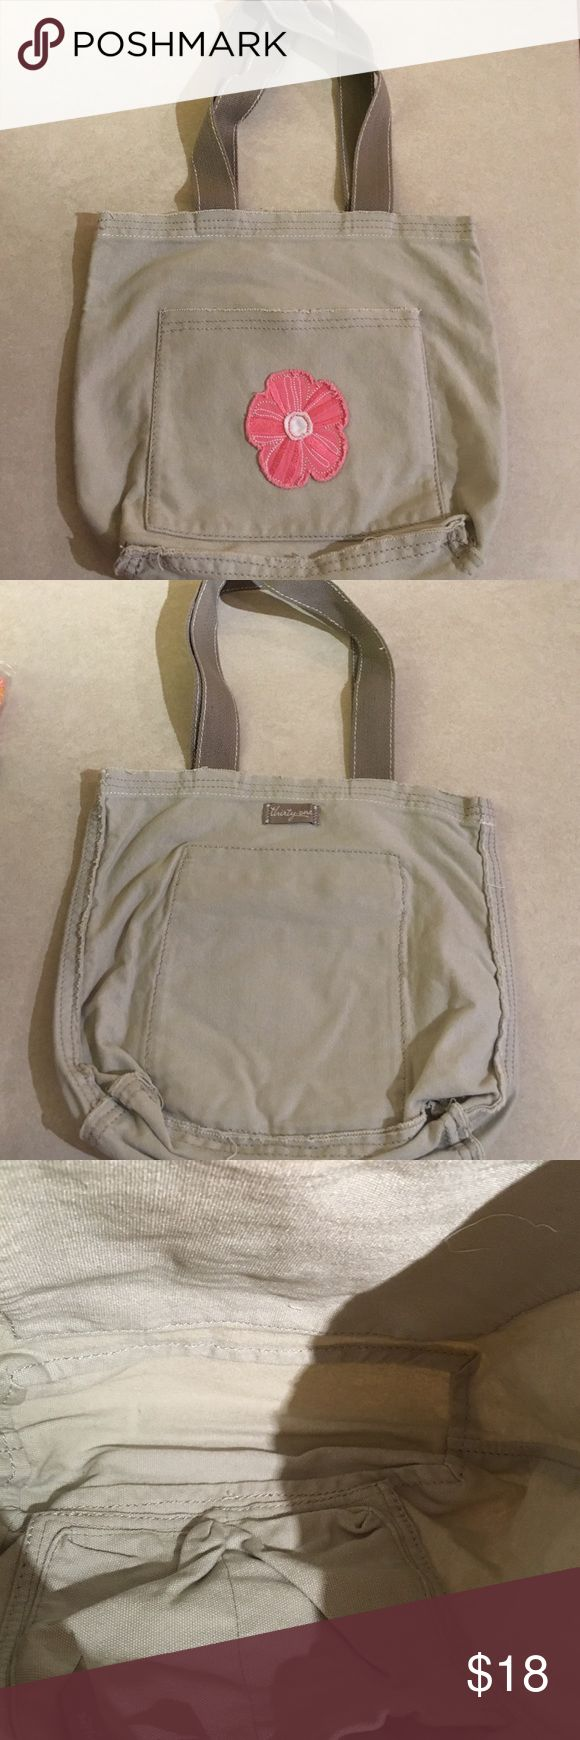 """Thirty-One Mini Retro Metro Bag Thirty-One Mini Retro Metro bag, bought used, I never used it, it is in Excellent condition... like brand new! Strap drop of 11"""" Thirty-One Bags Mini Bags"""